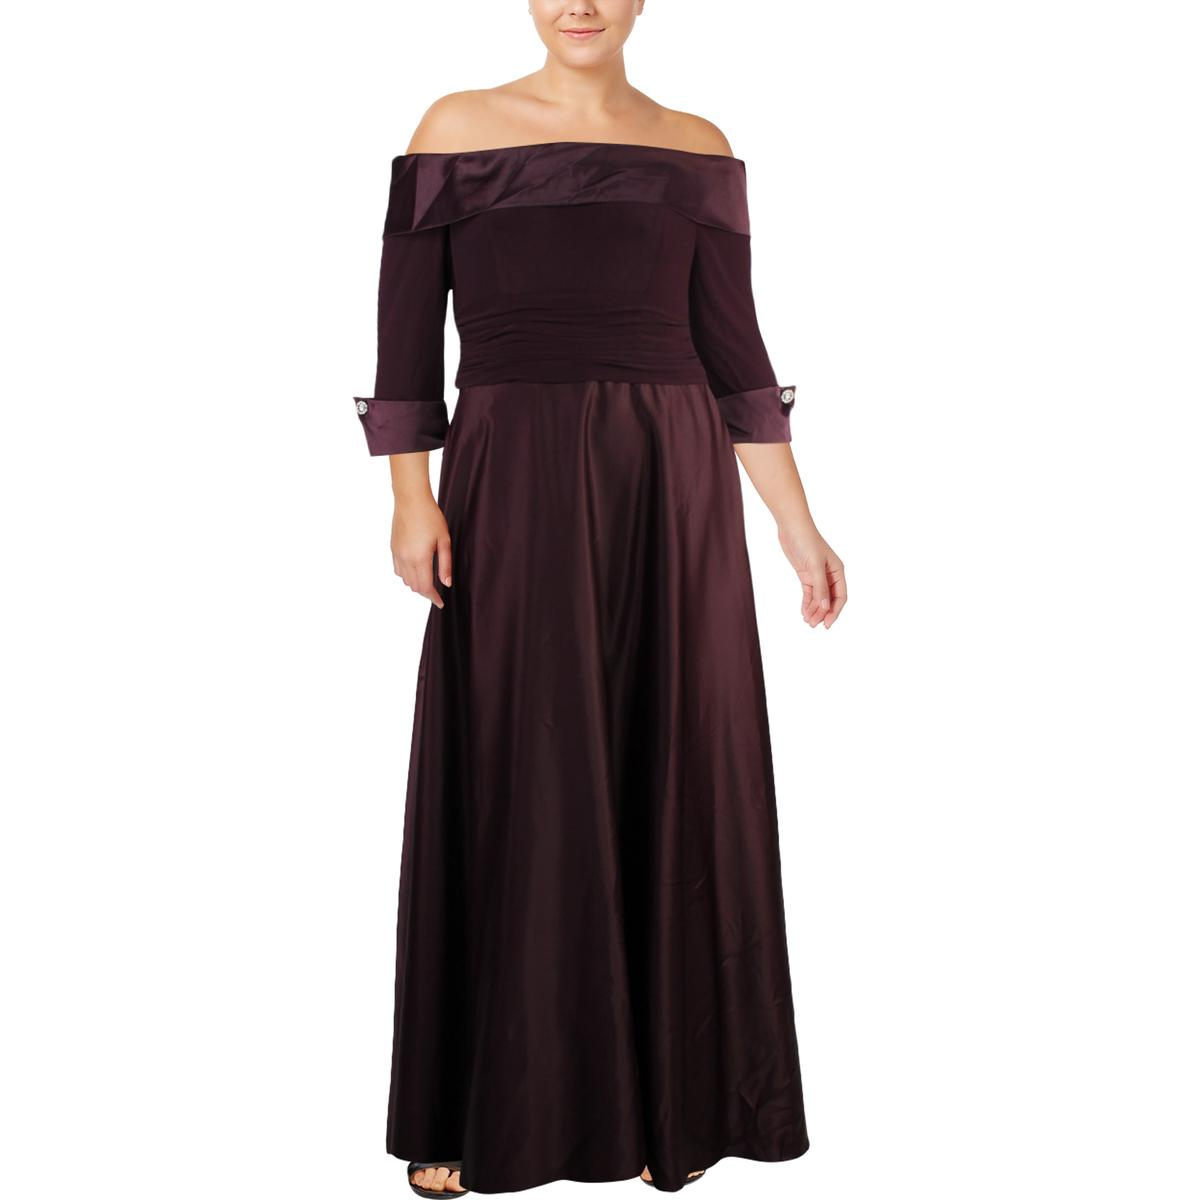 4f39bf72ba01 Details about Jessica Howard Womens Off-The-Shoulder Ball Gown Evening  Dress Gown BHFO 9434